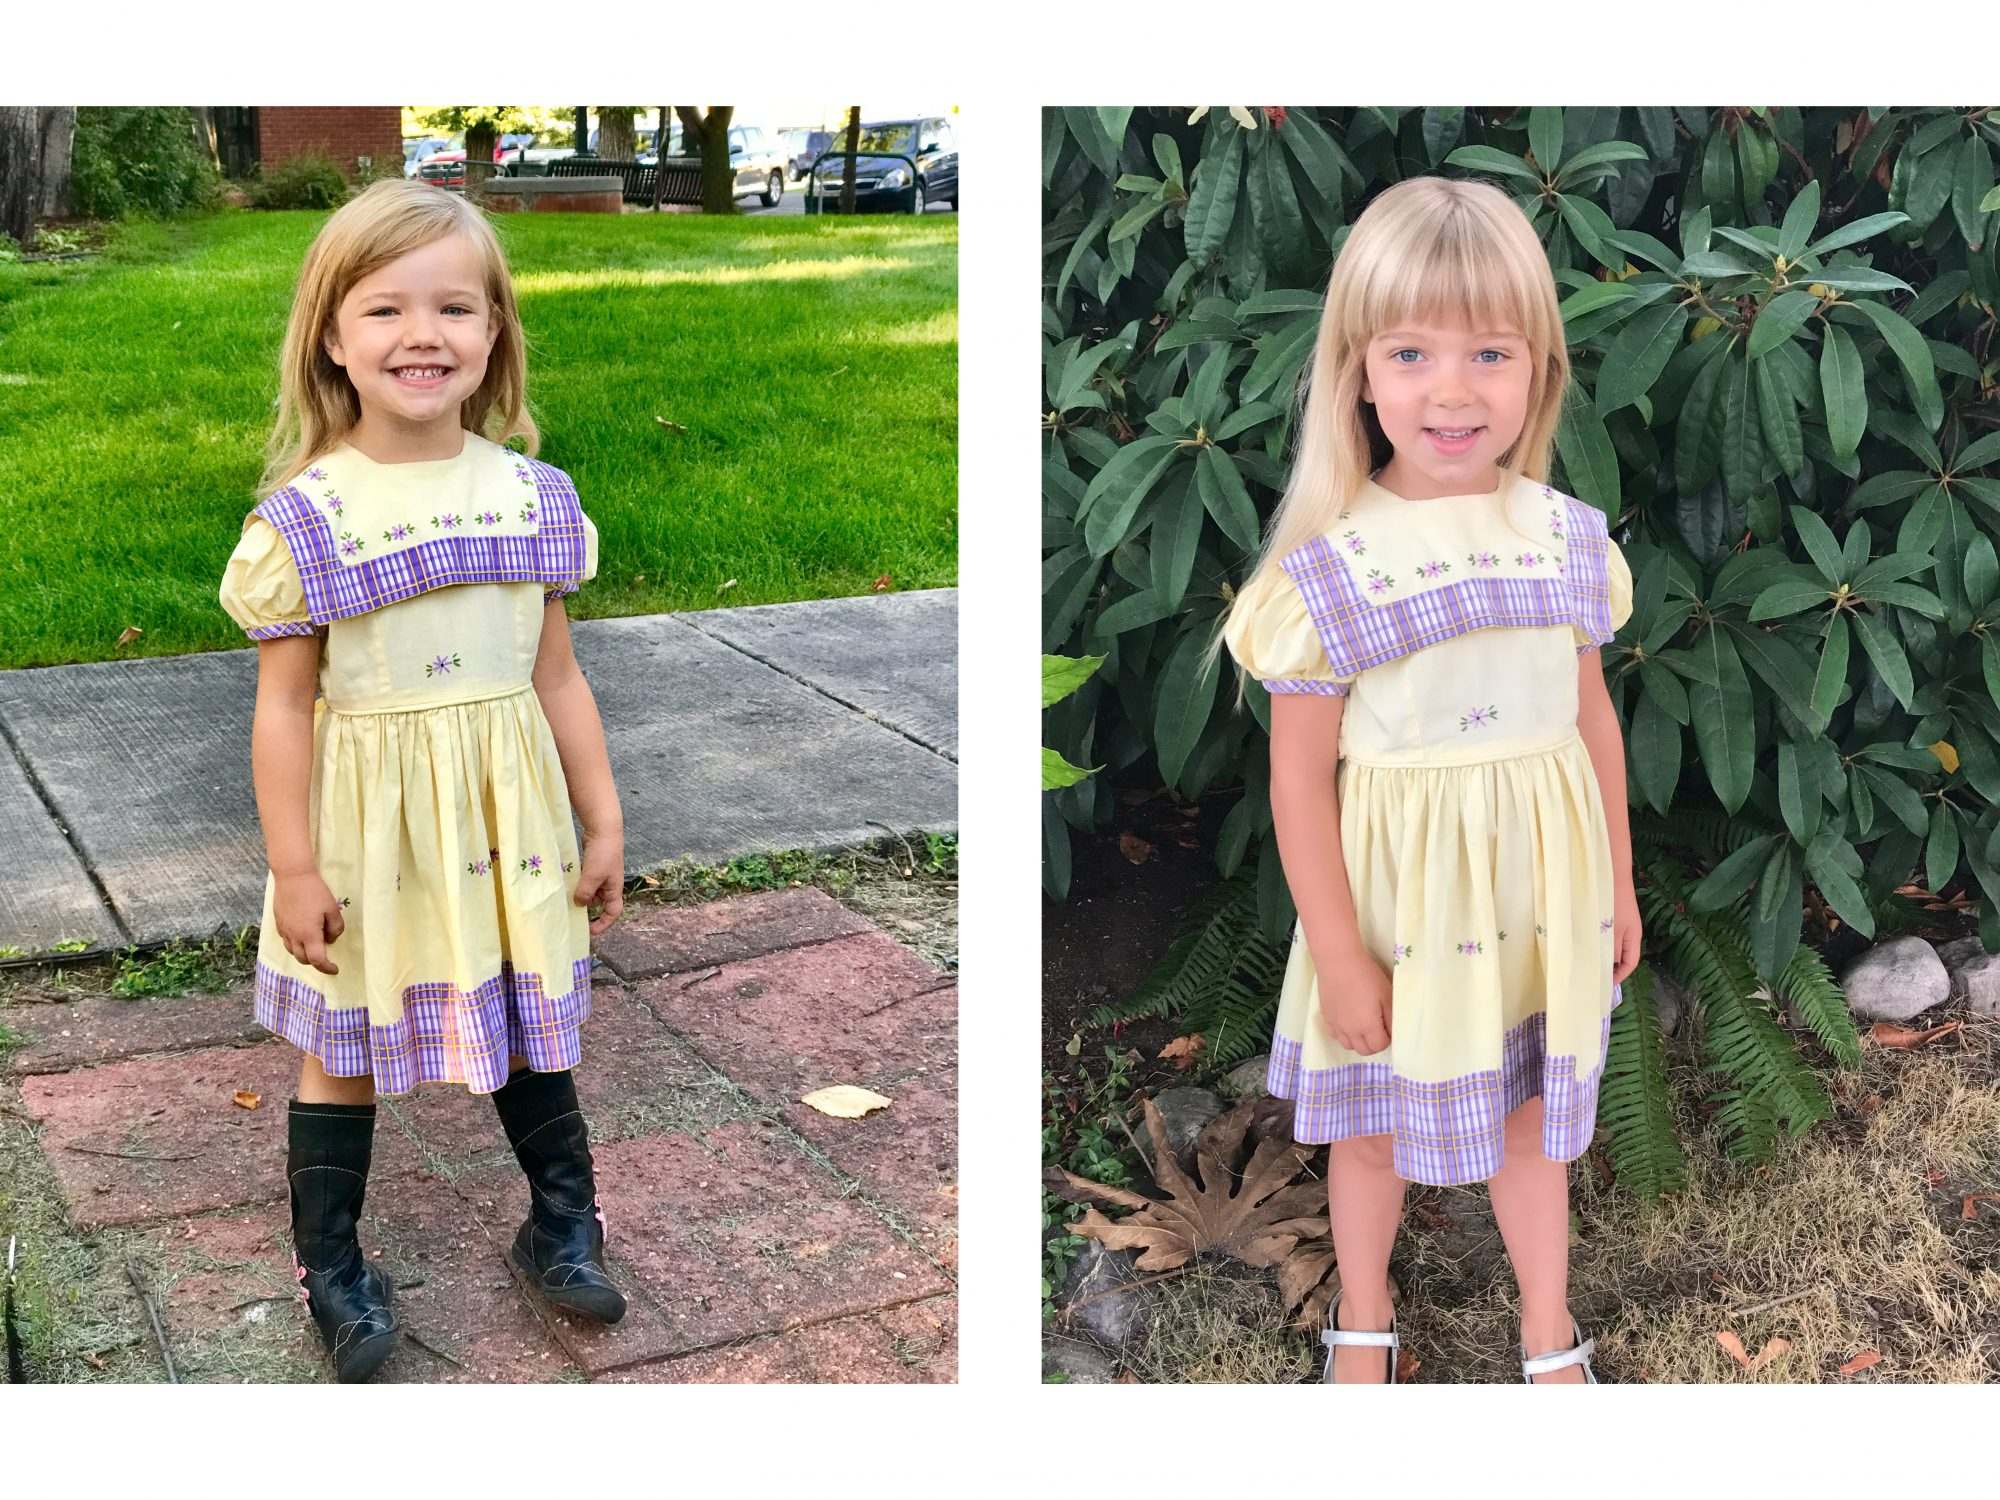 Purple and yellow dress images